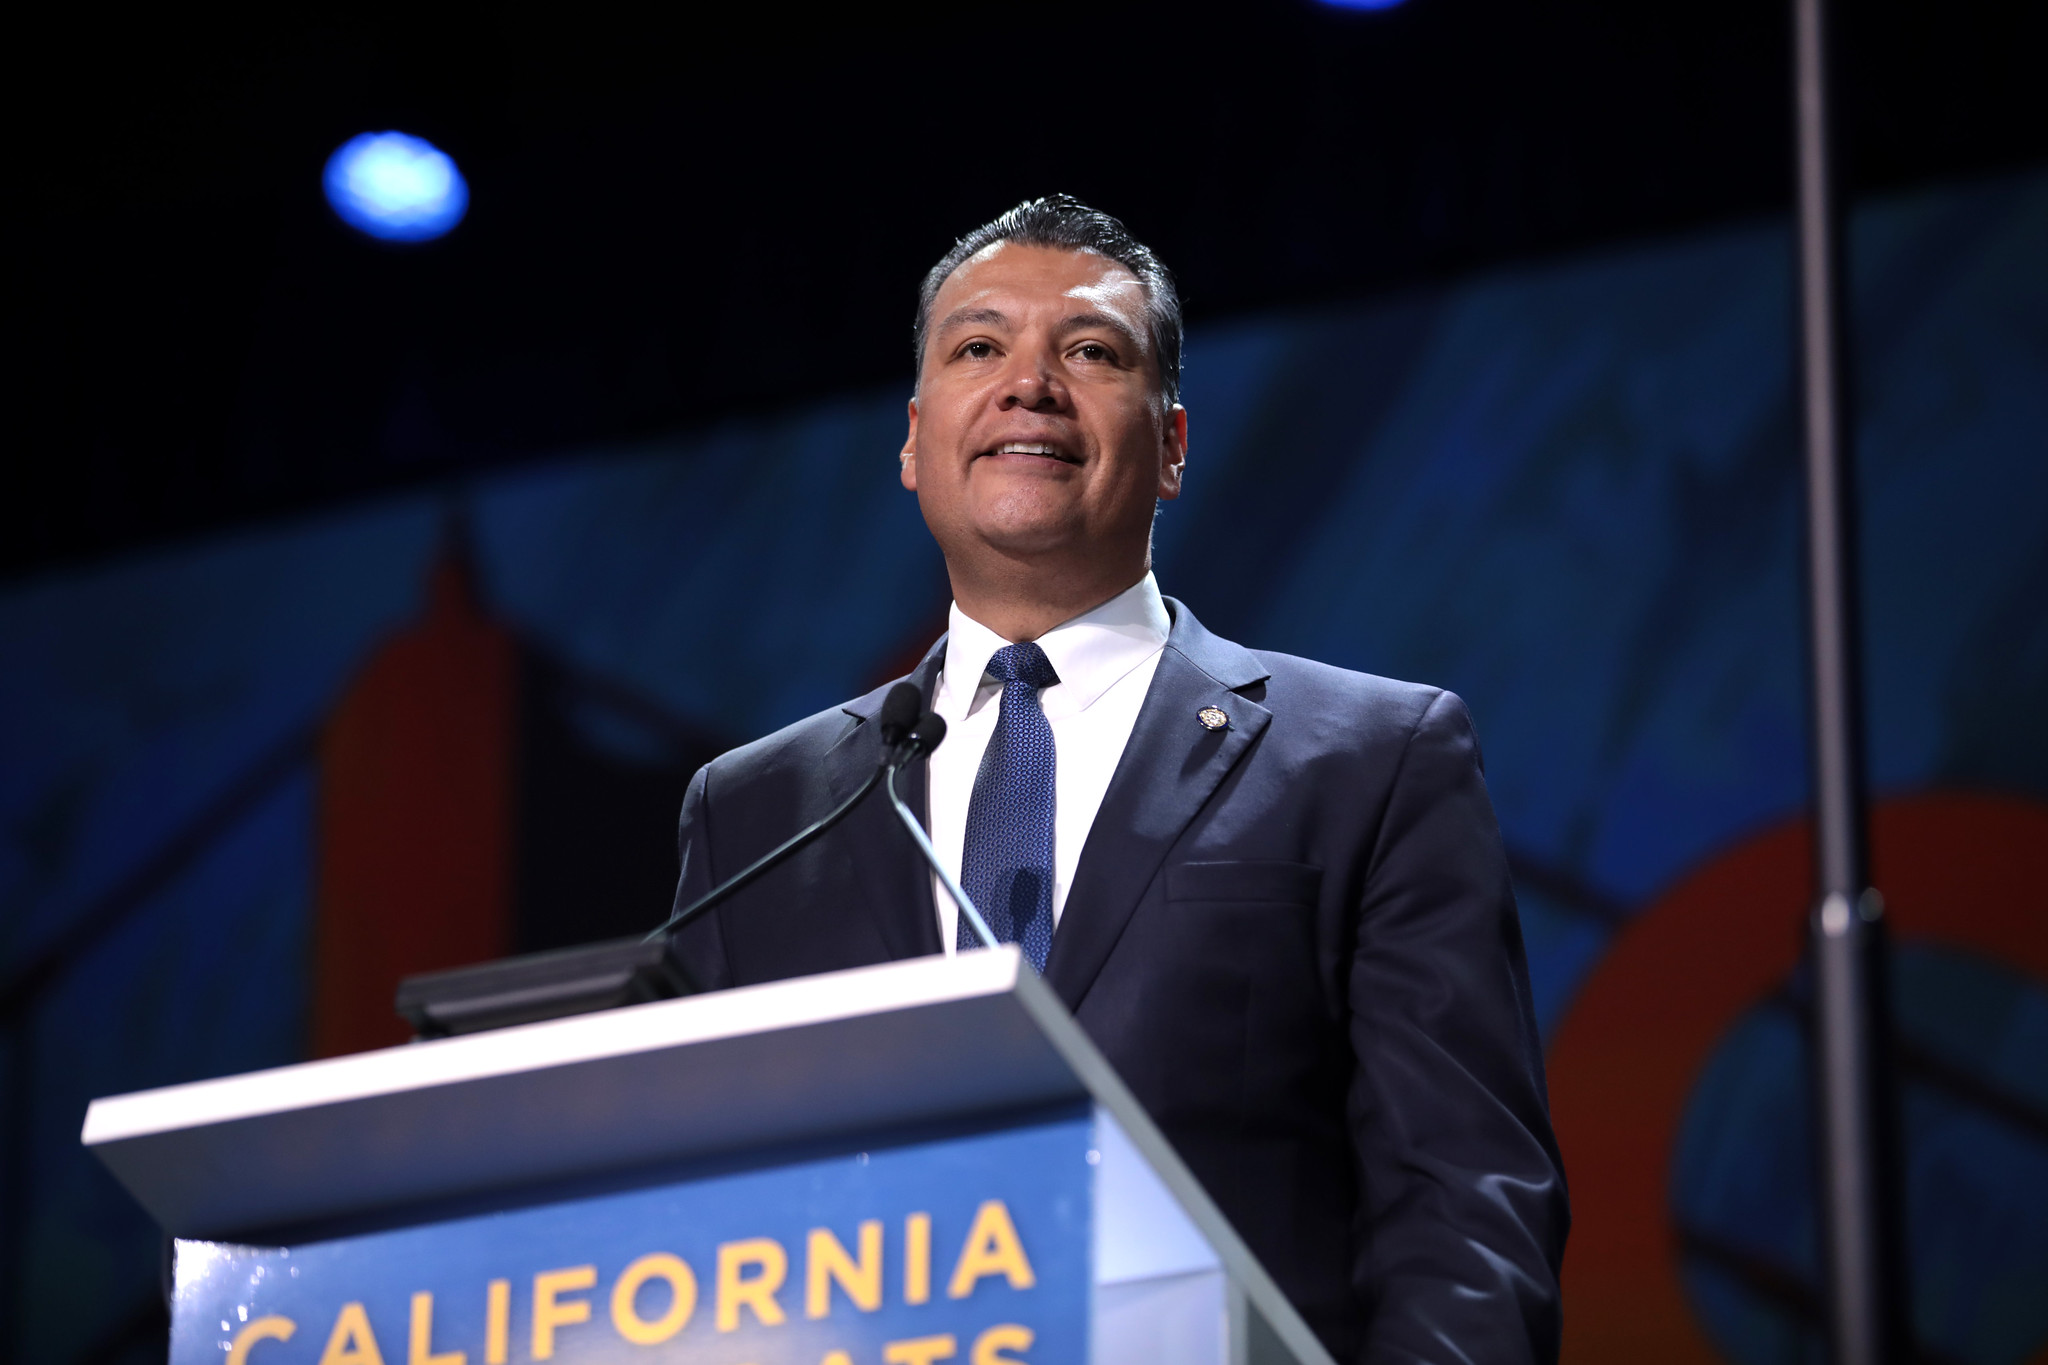 Secretary of State Alex Padilla speaking with attendees at the 2019 California Democratic Party State Convention at the George R. Moscone Convention Center in San Francisco, California.